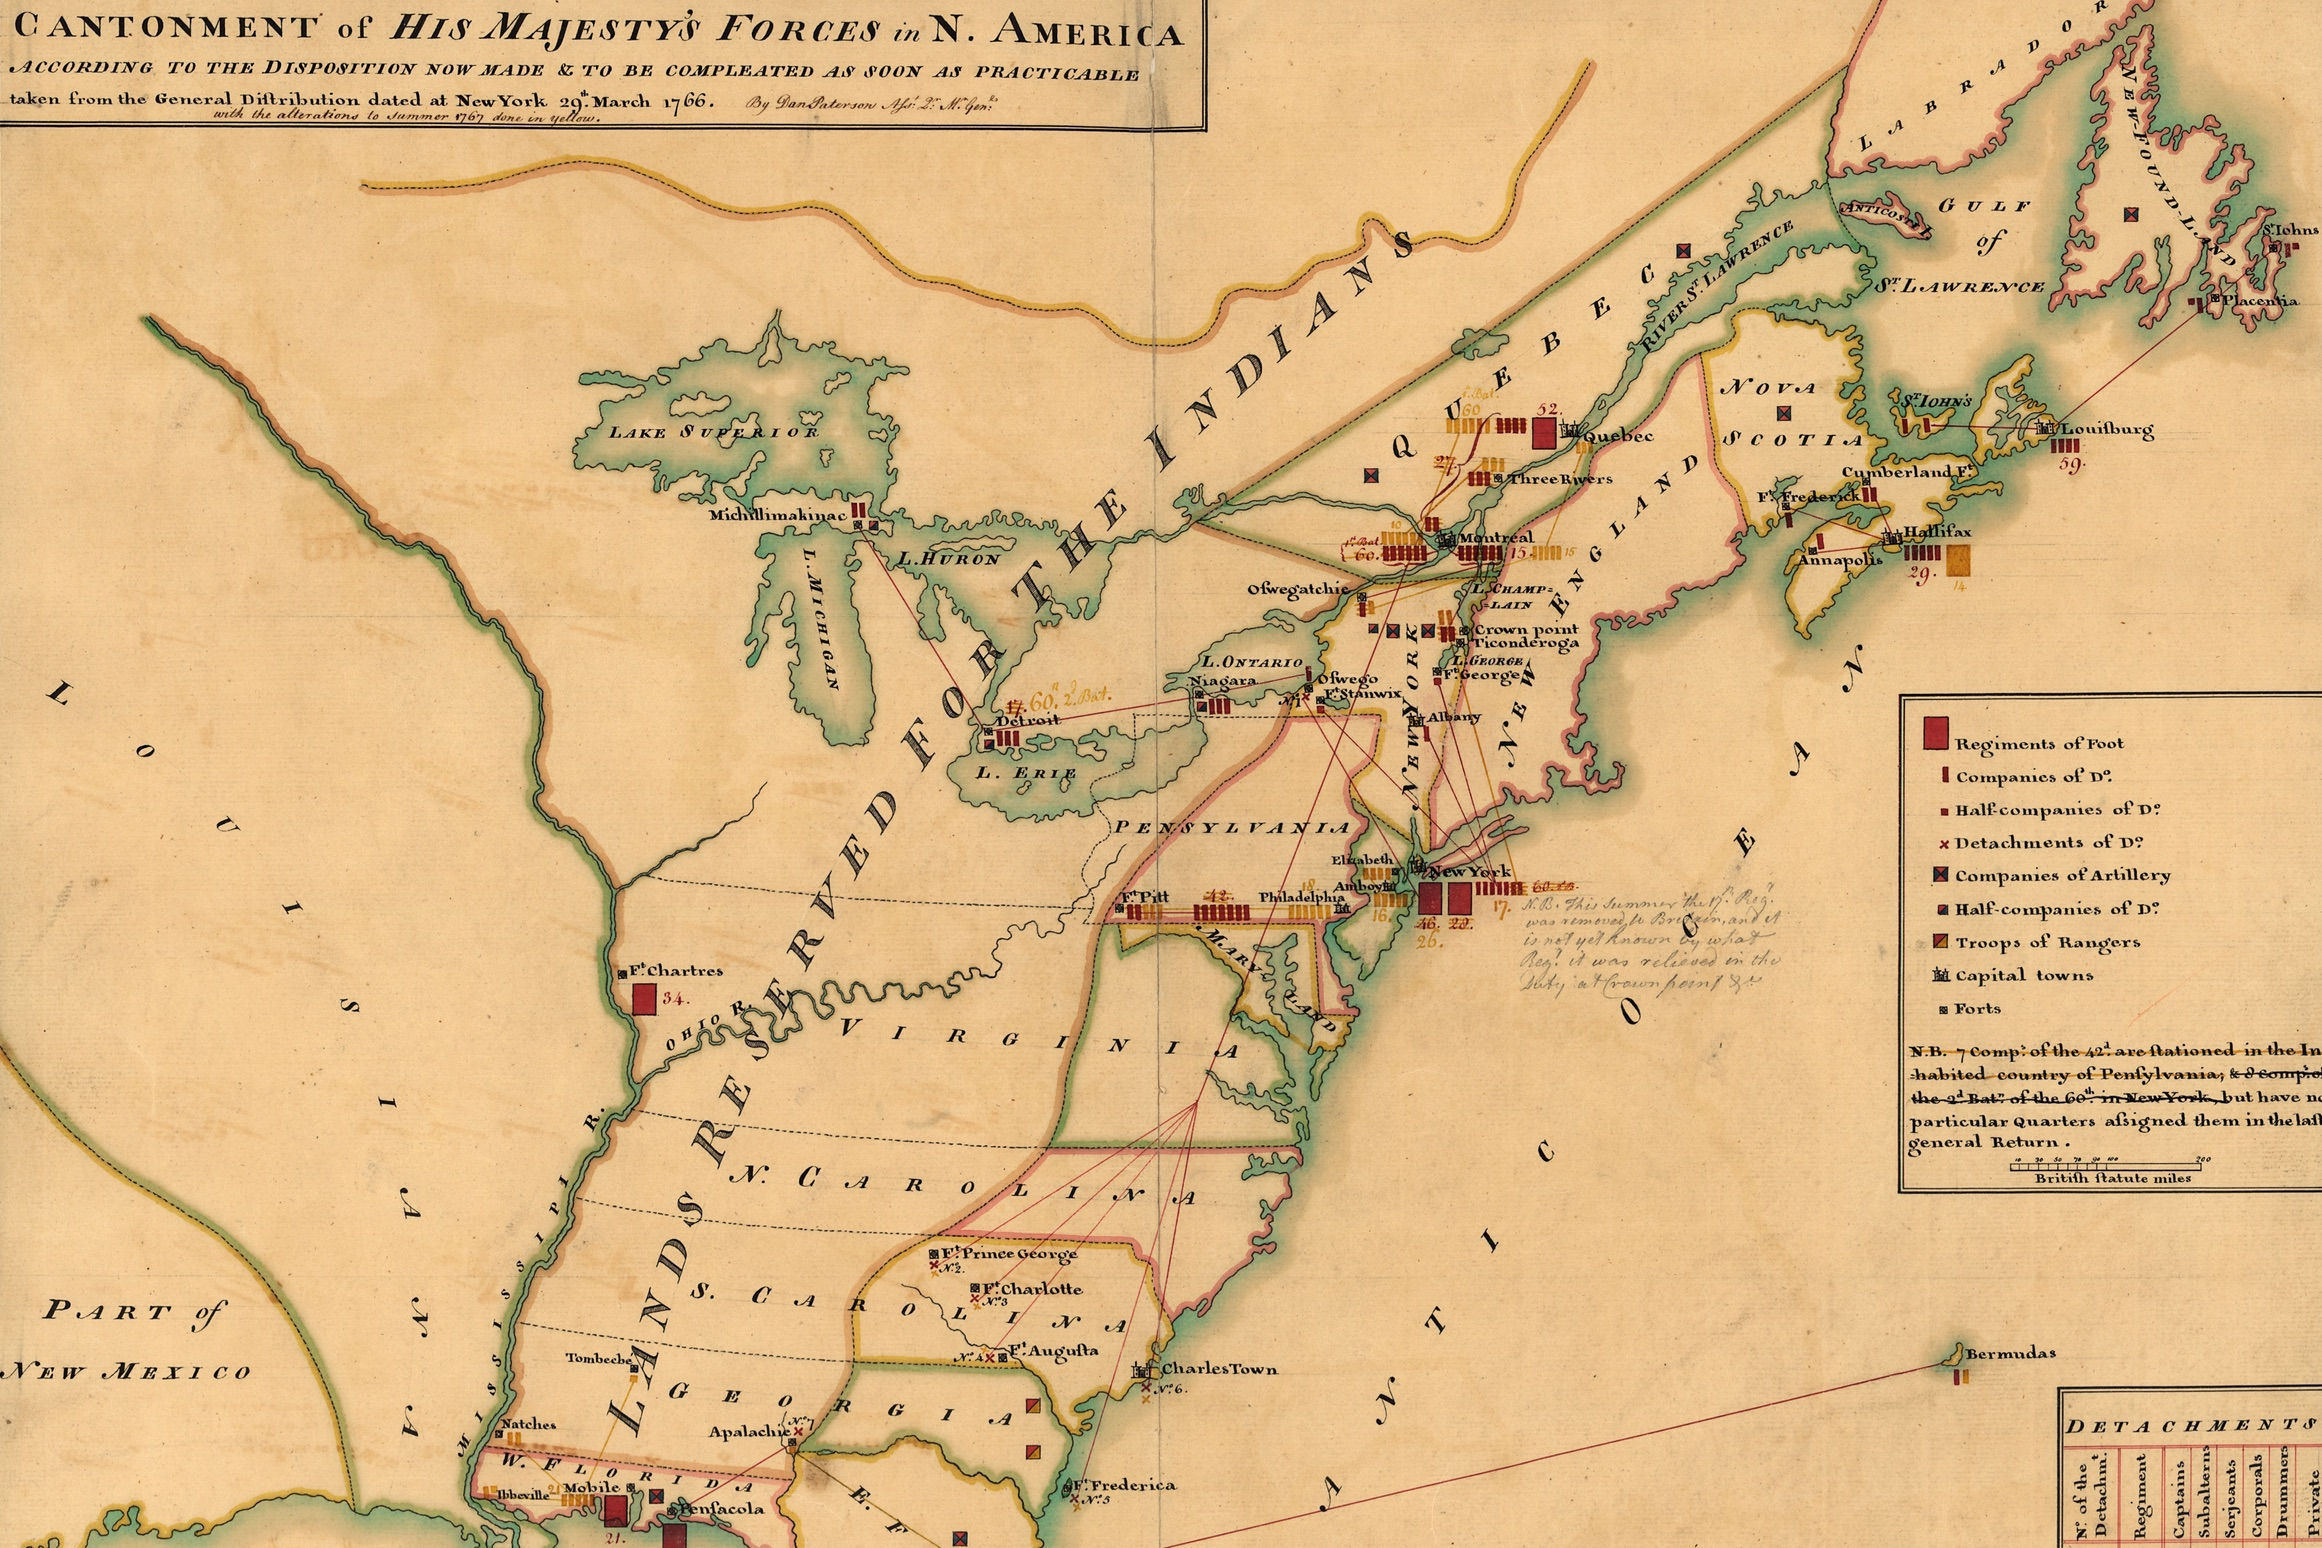 tHis map of the disposition of British forces in 1766 is one of ten great maps of the Revolutionary War.